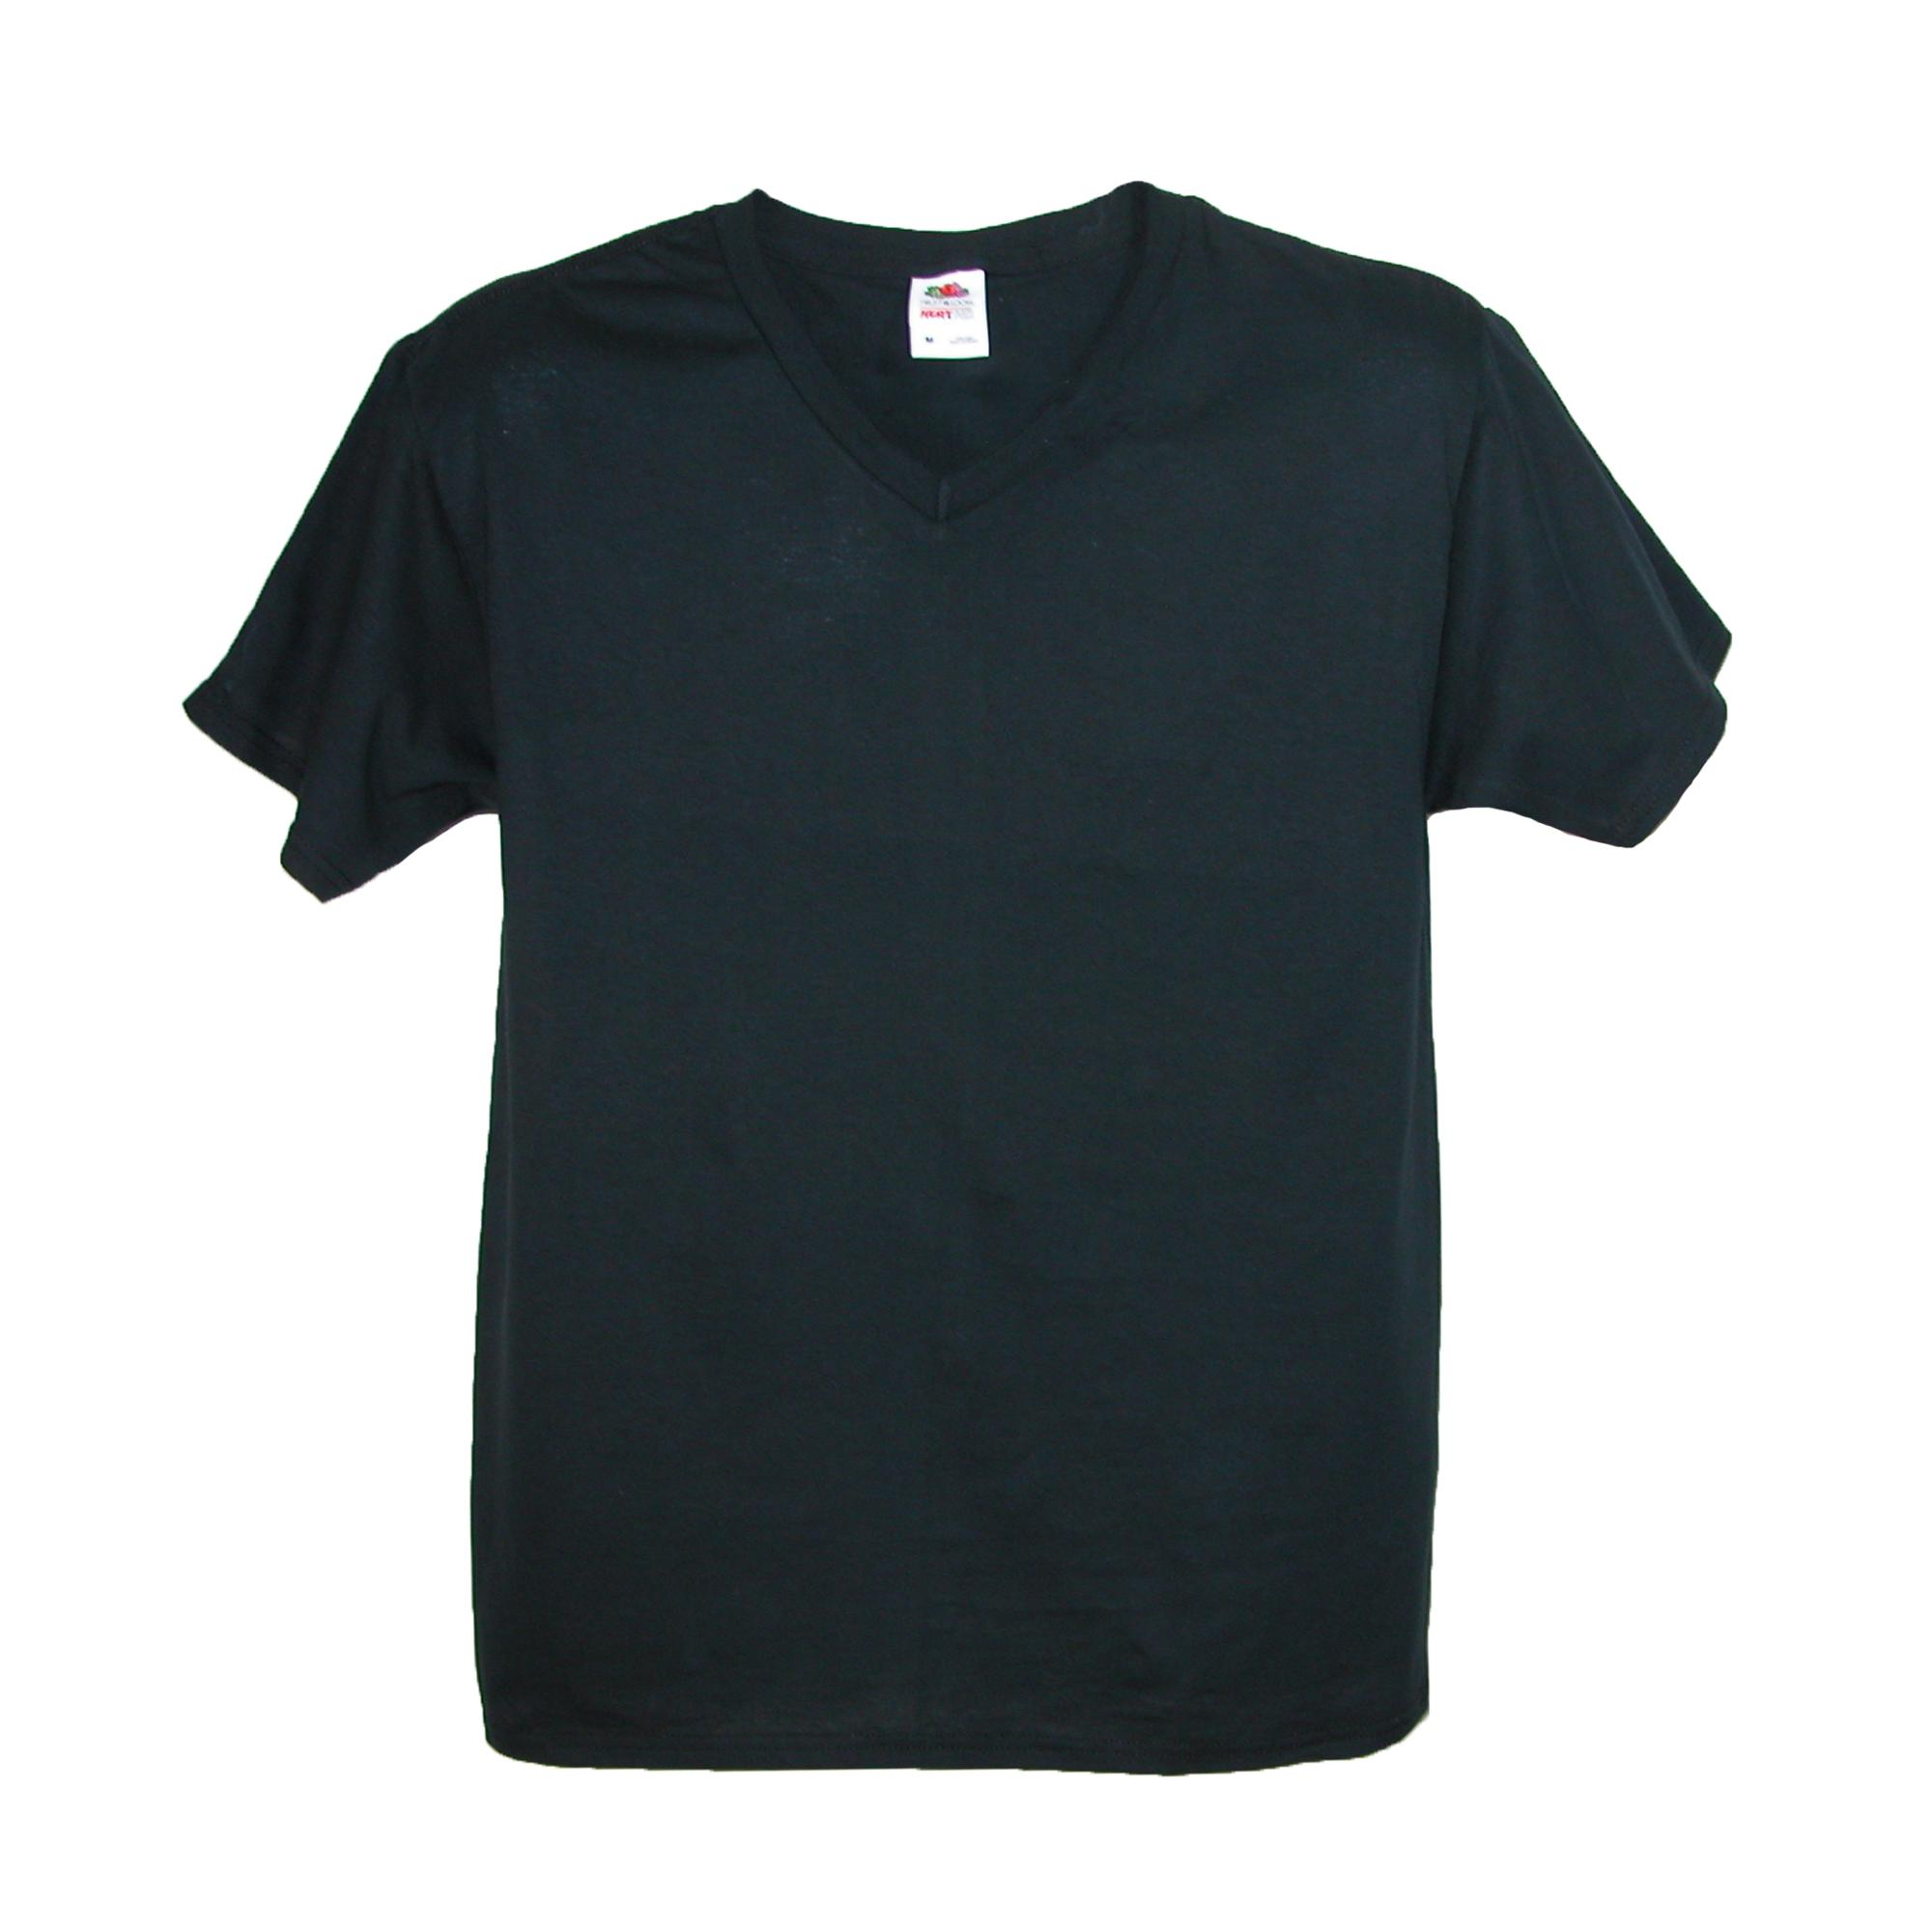 New fruit of the loom big and tall v neck cotton t shirt for Tall v neck t shirts